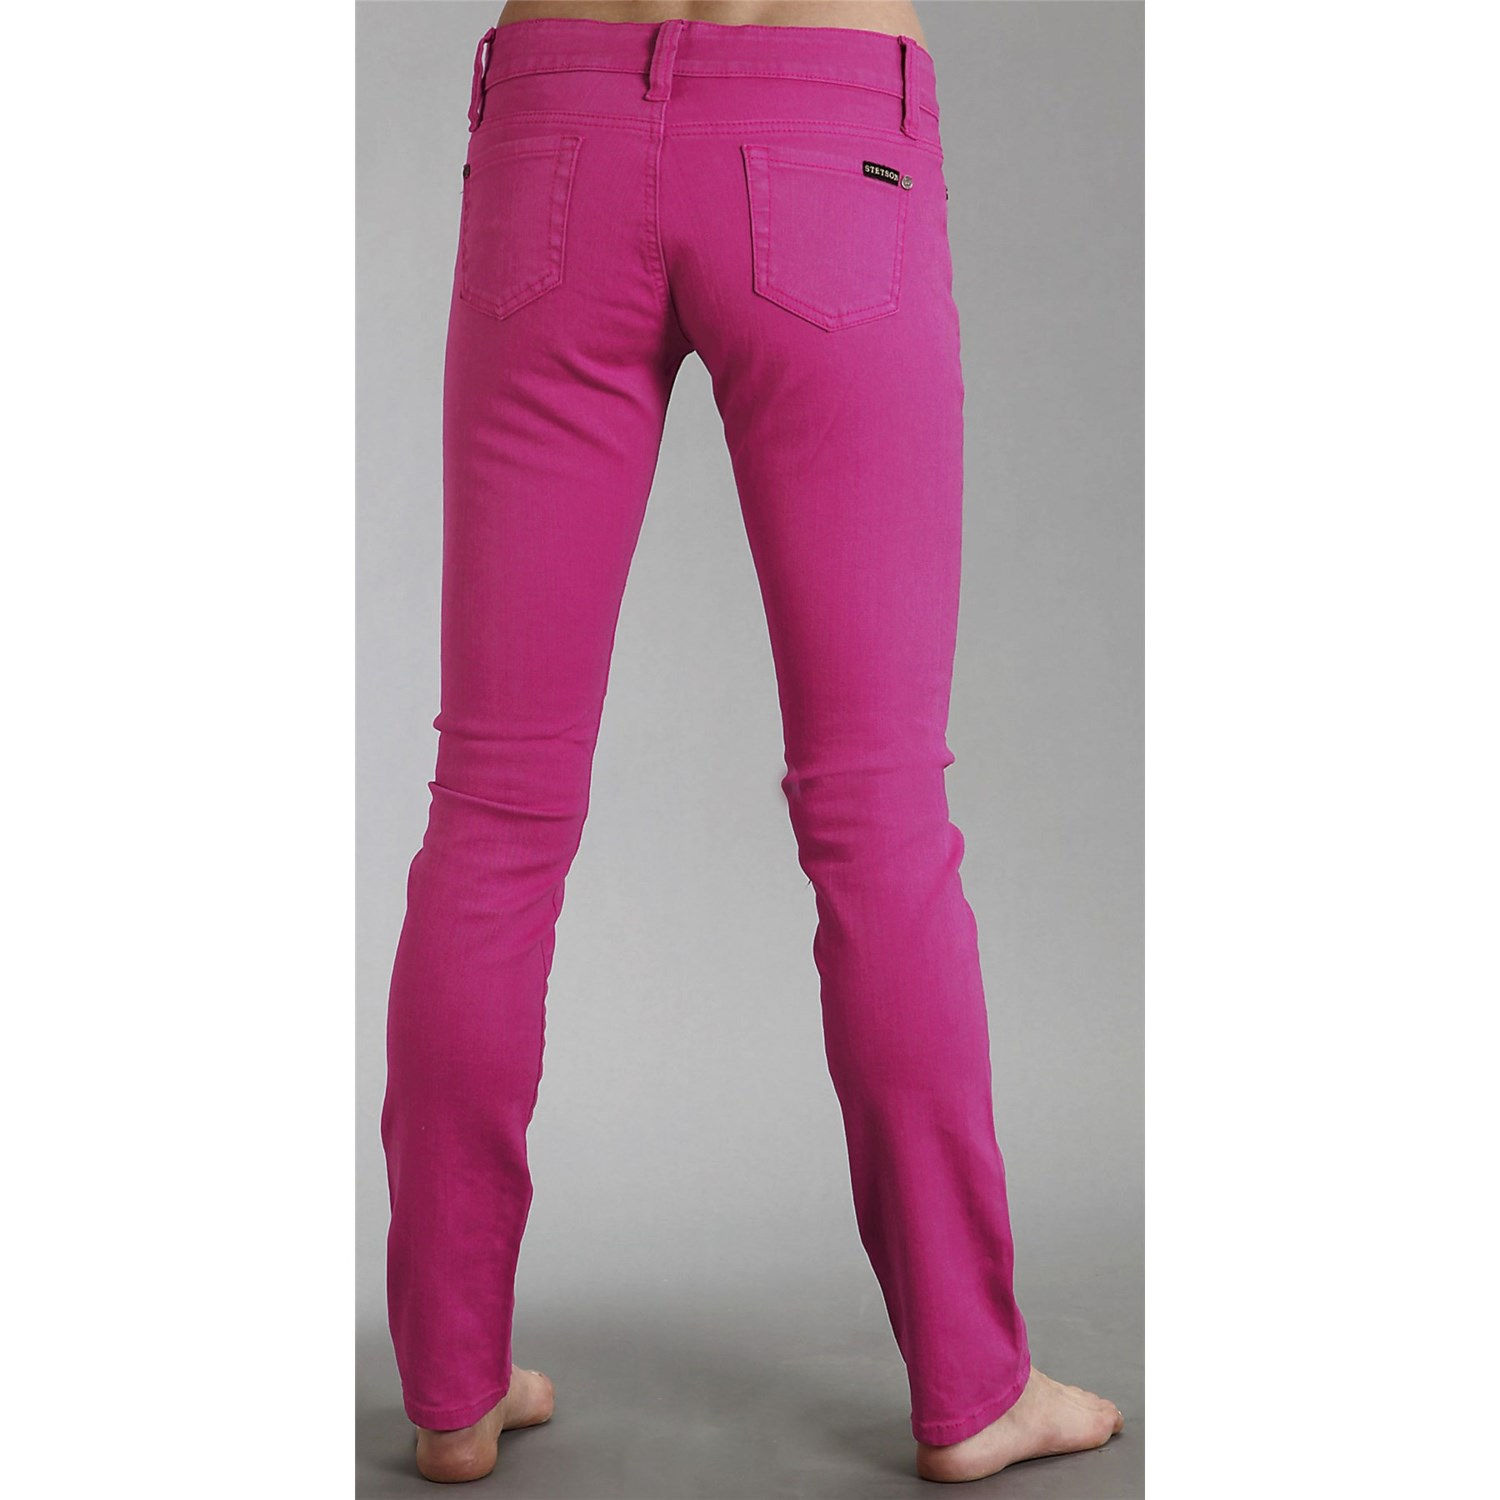 Free shipping on girls' jeans for toddlers, little girls and big girls at gtacashbank.ga Totally free shipping and returns.